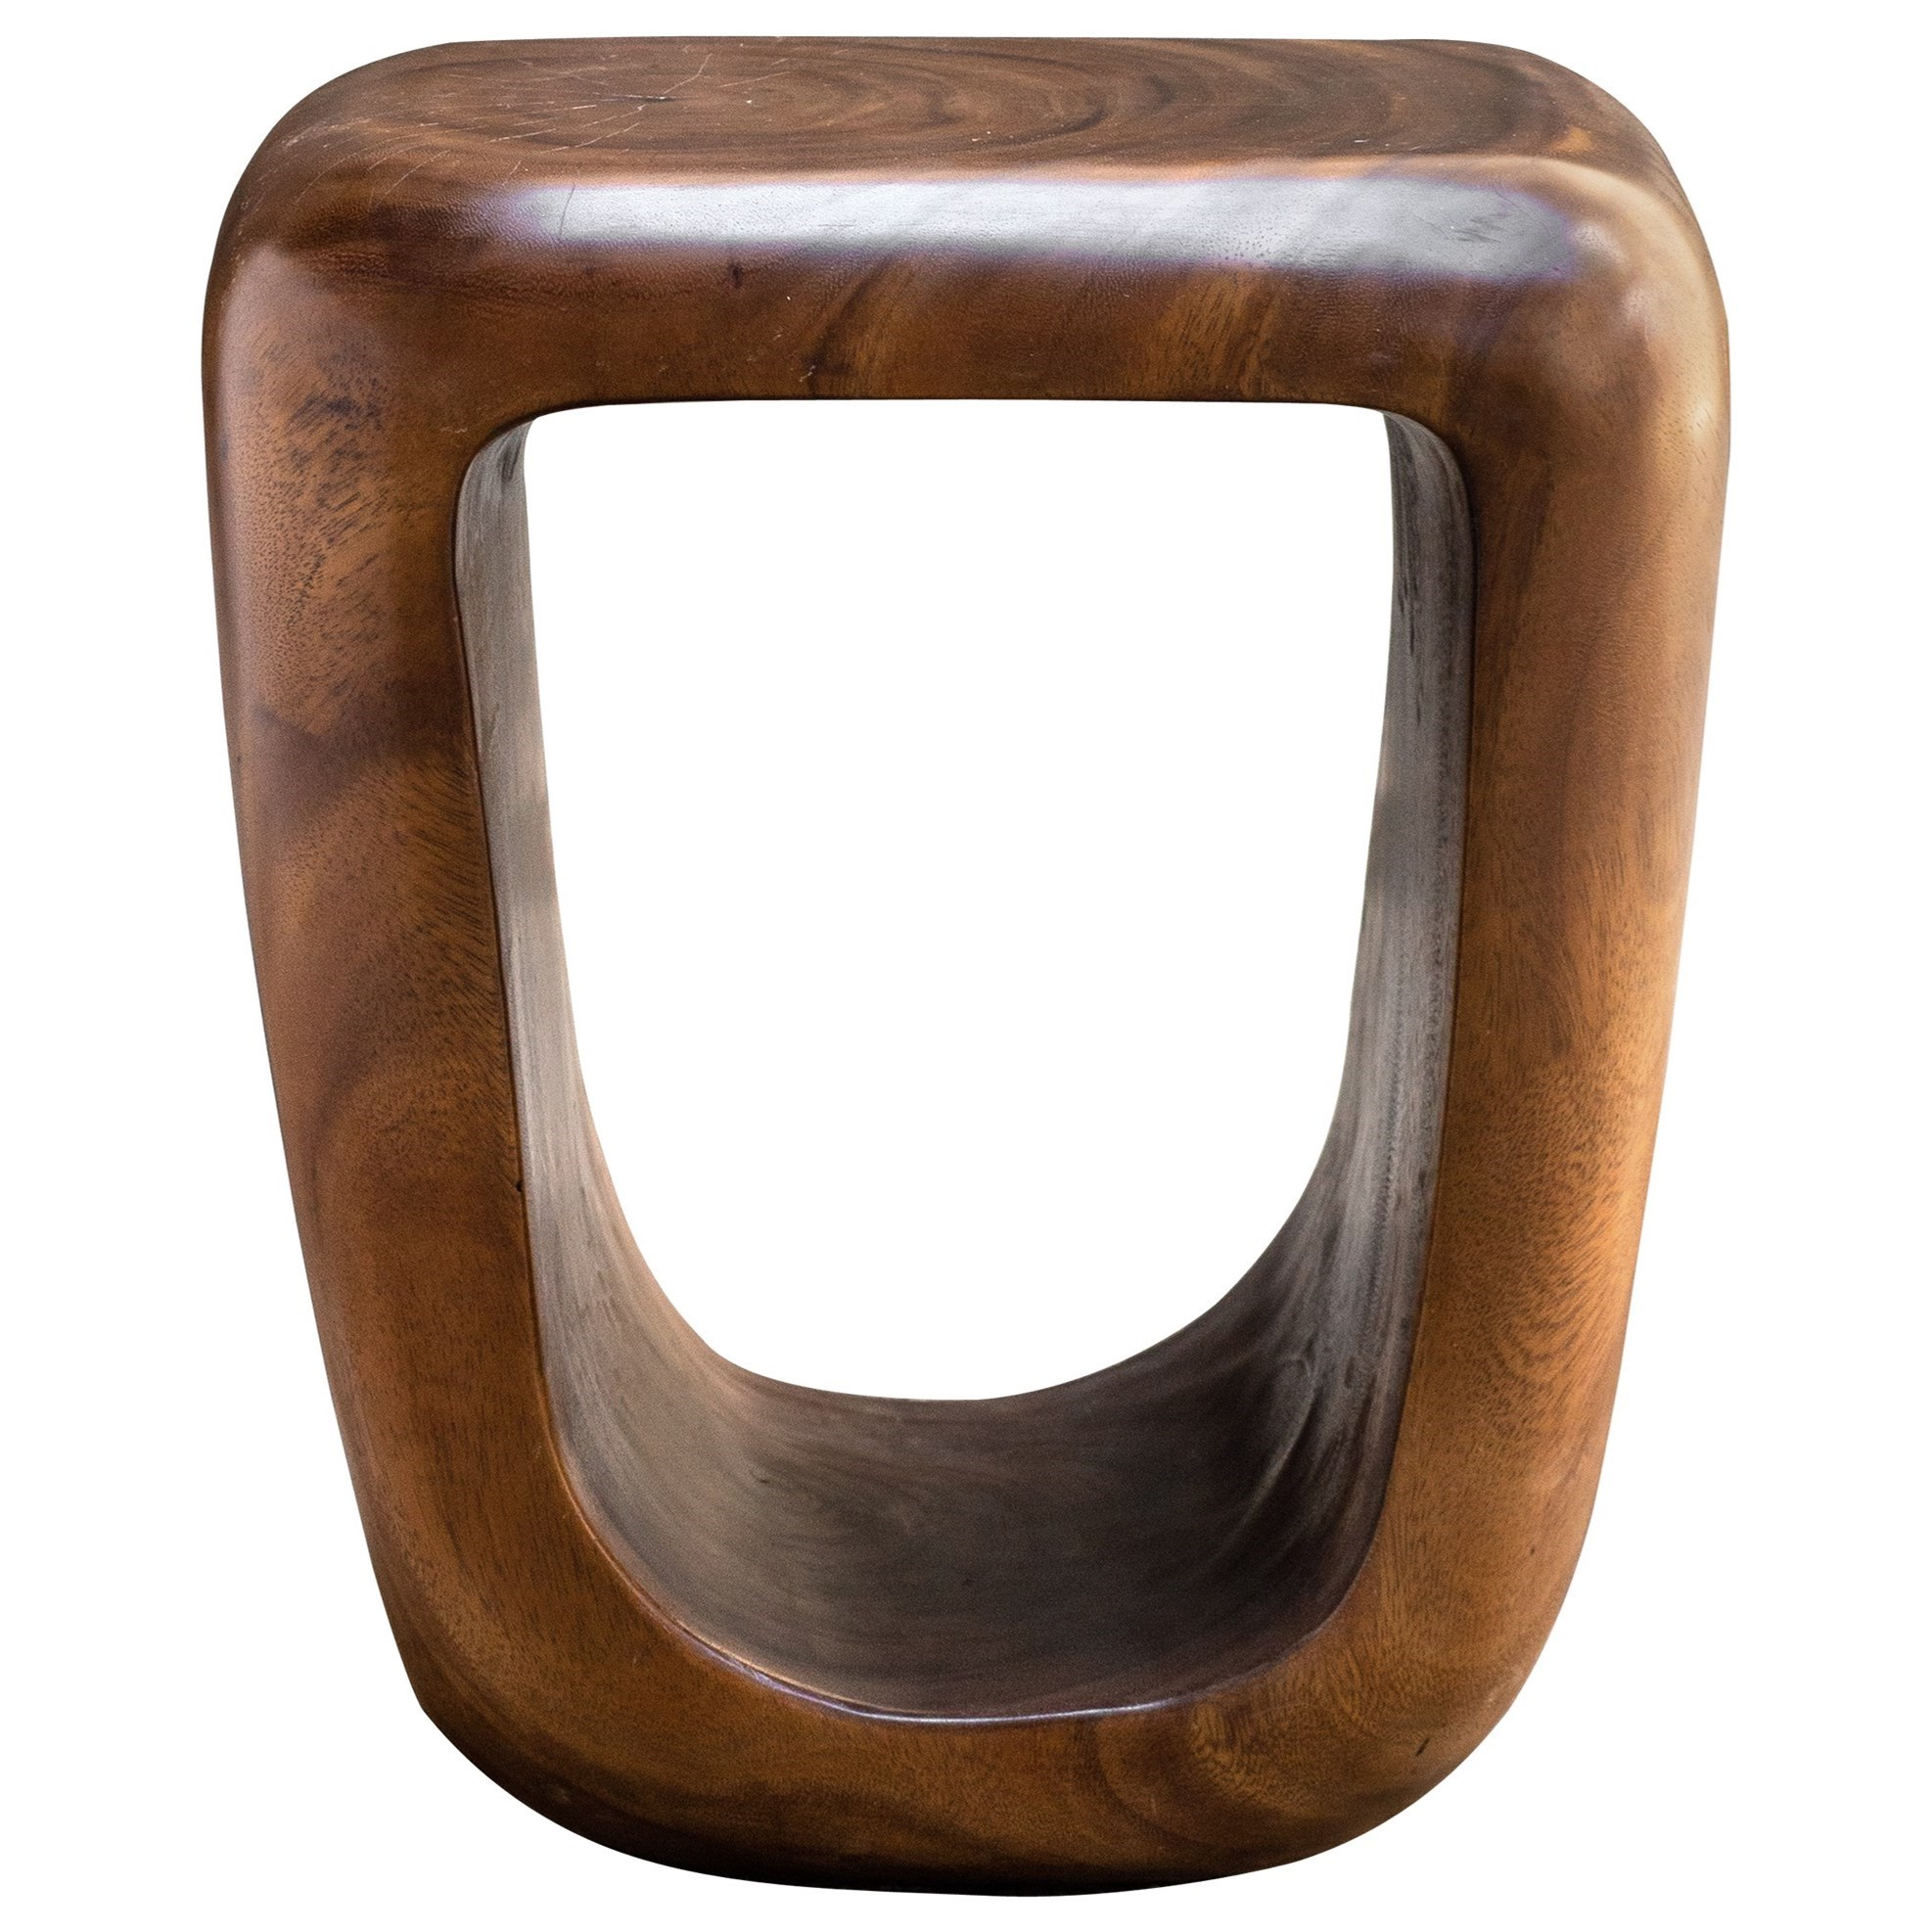 Accent Furniture - Stools Loophole Wooden Accent Stool by Uttermost at O'Dunk & O'Bright Furniture